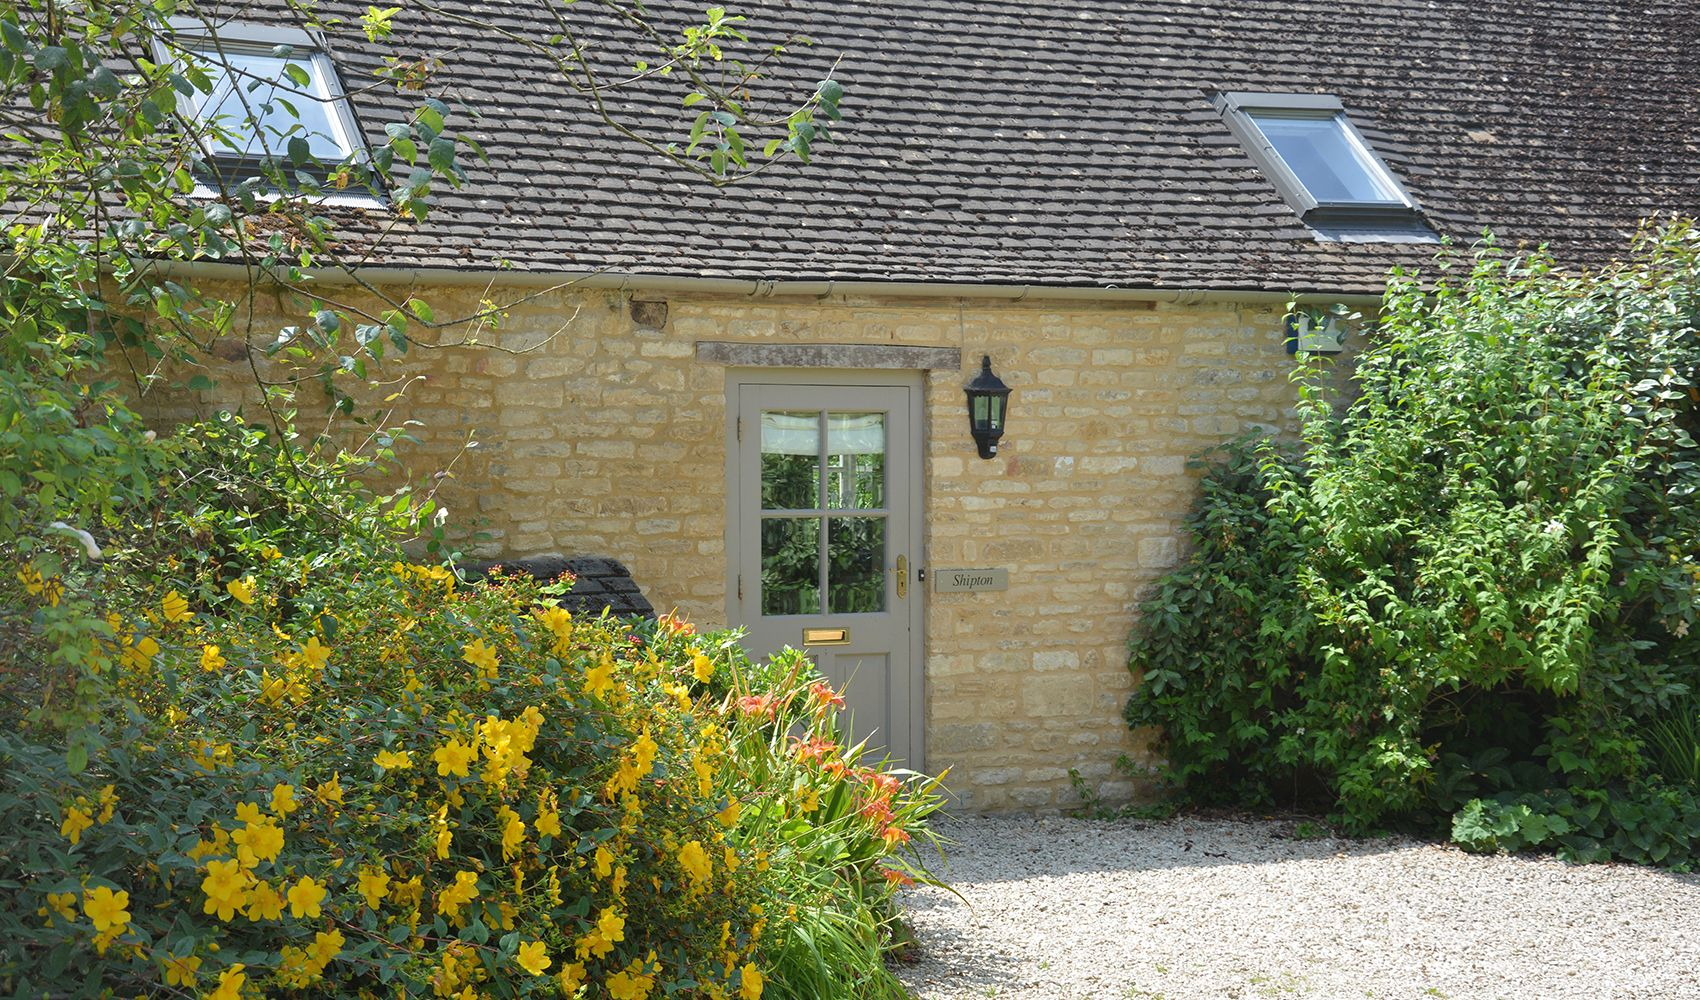 Shipton Cottage, sleeping 6, is built on one level with its own private car park